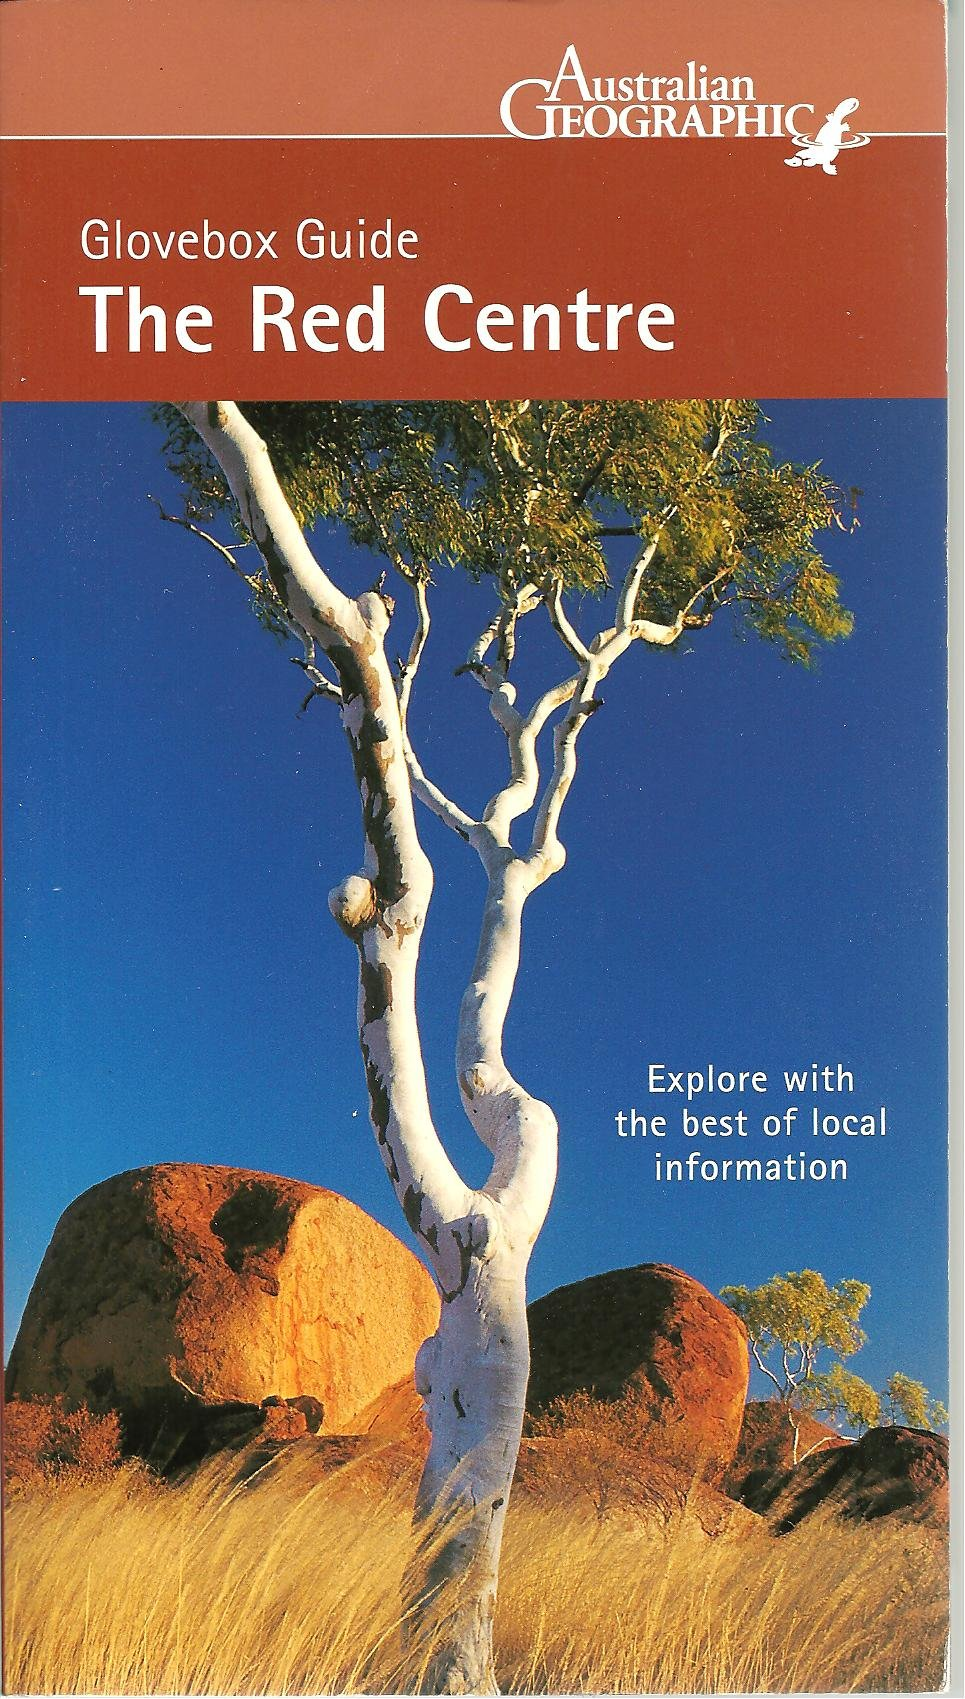 The Red Centre (Australian Geographic Glovebox Guide) PDF